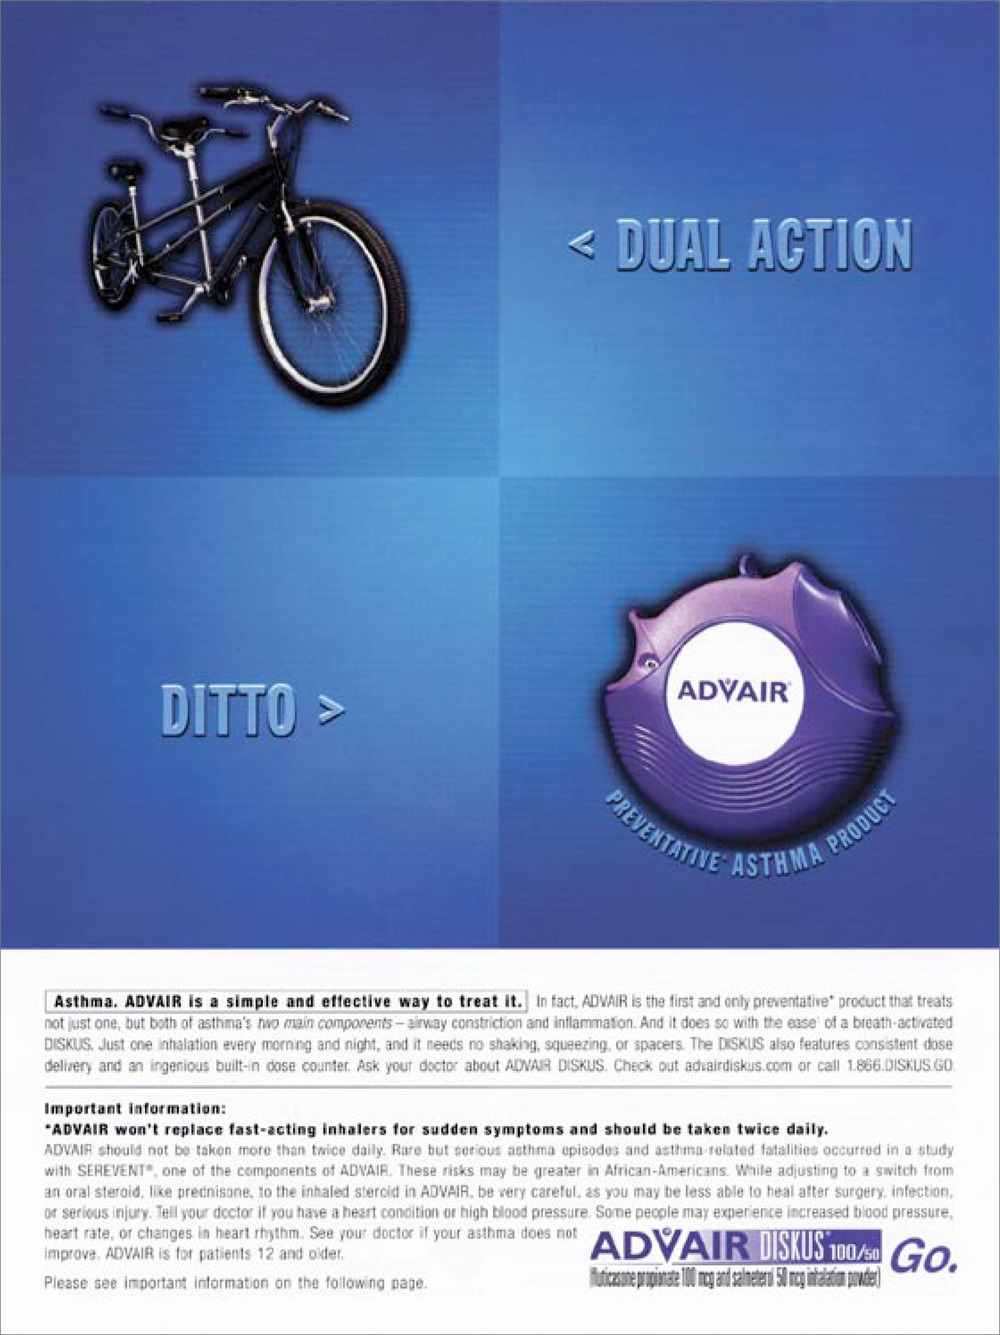 ADVAIR-Ditto2.jpg